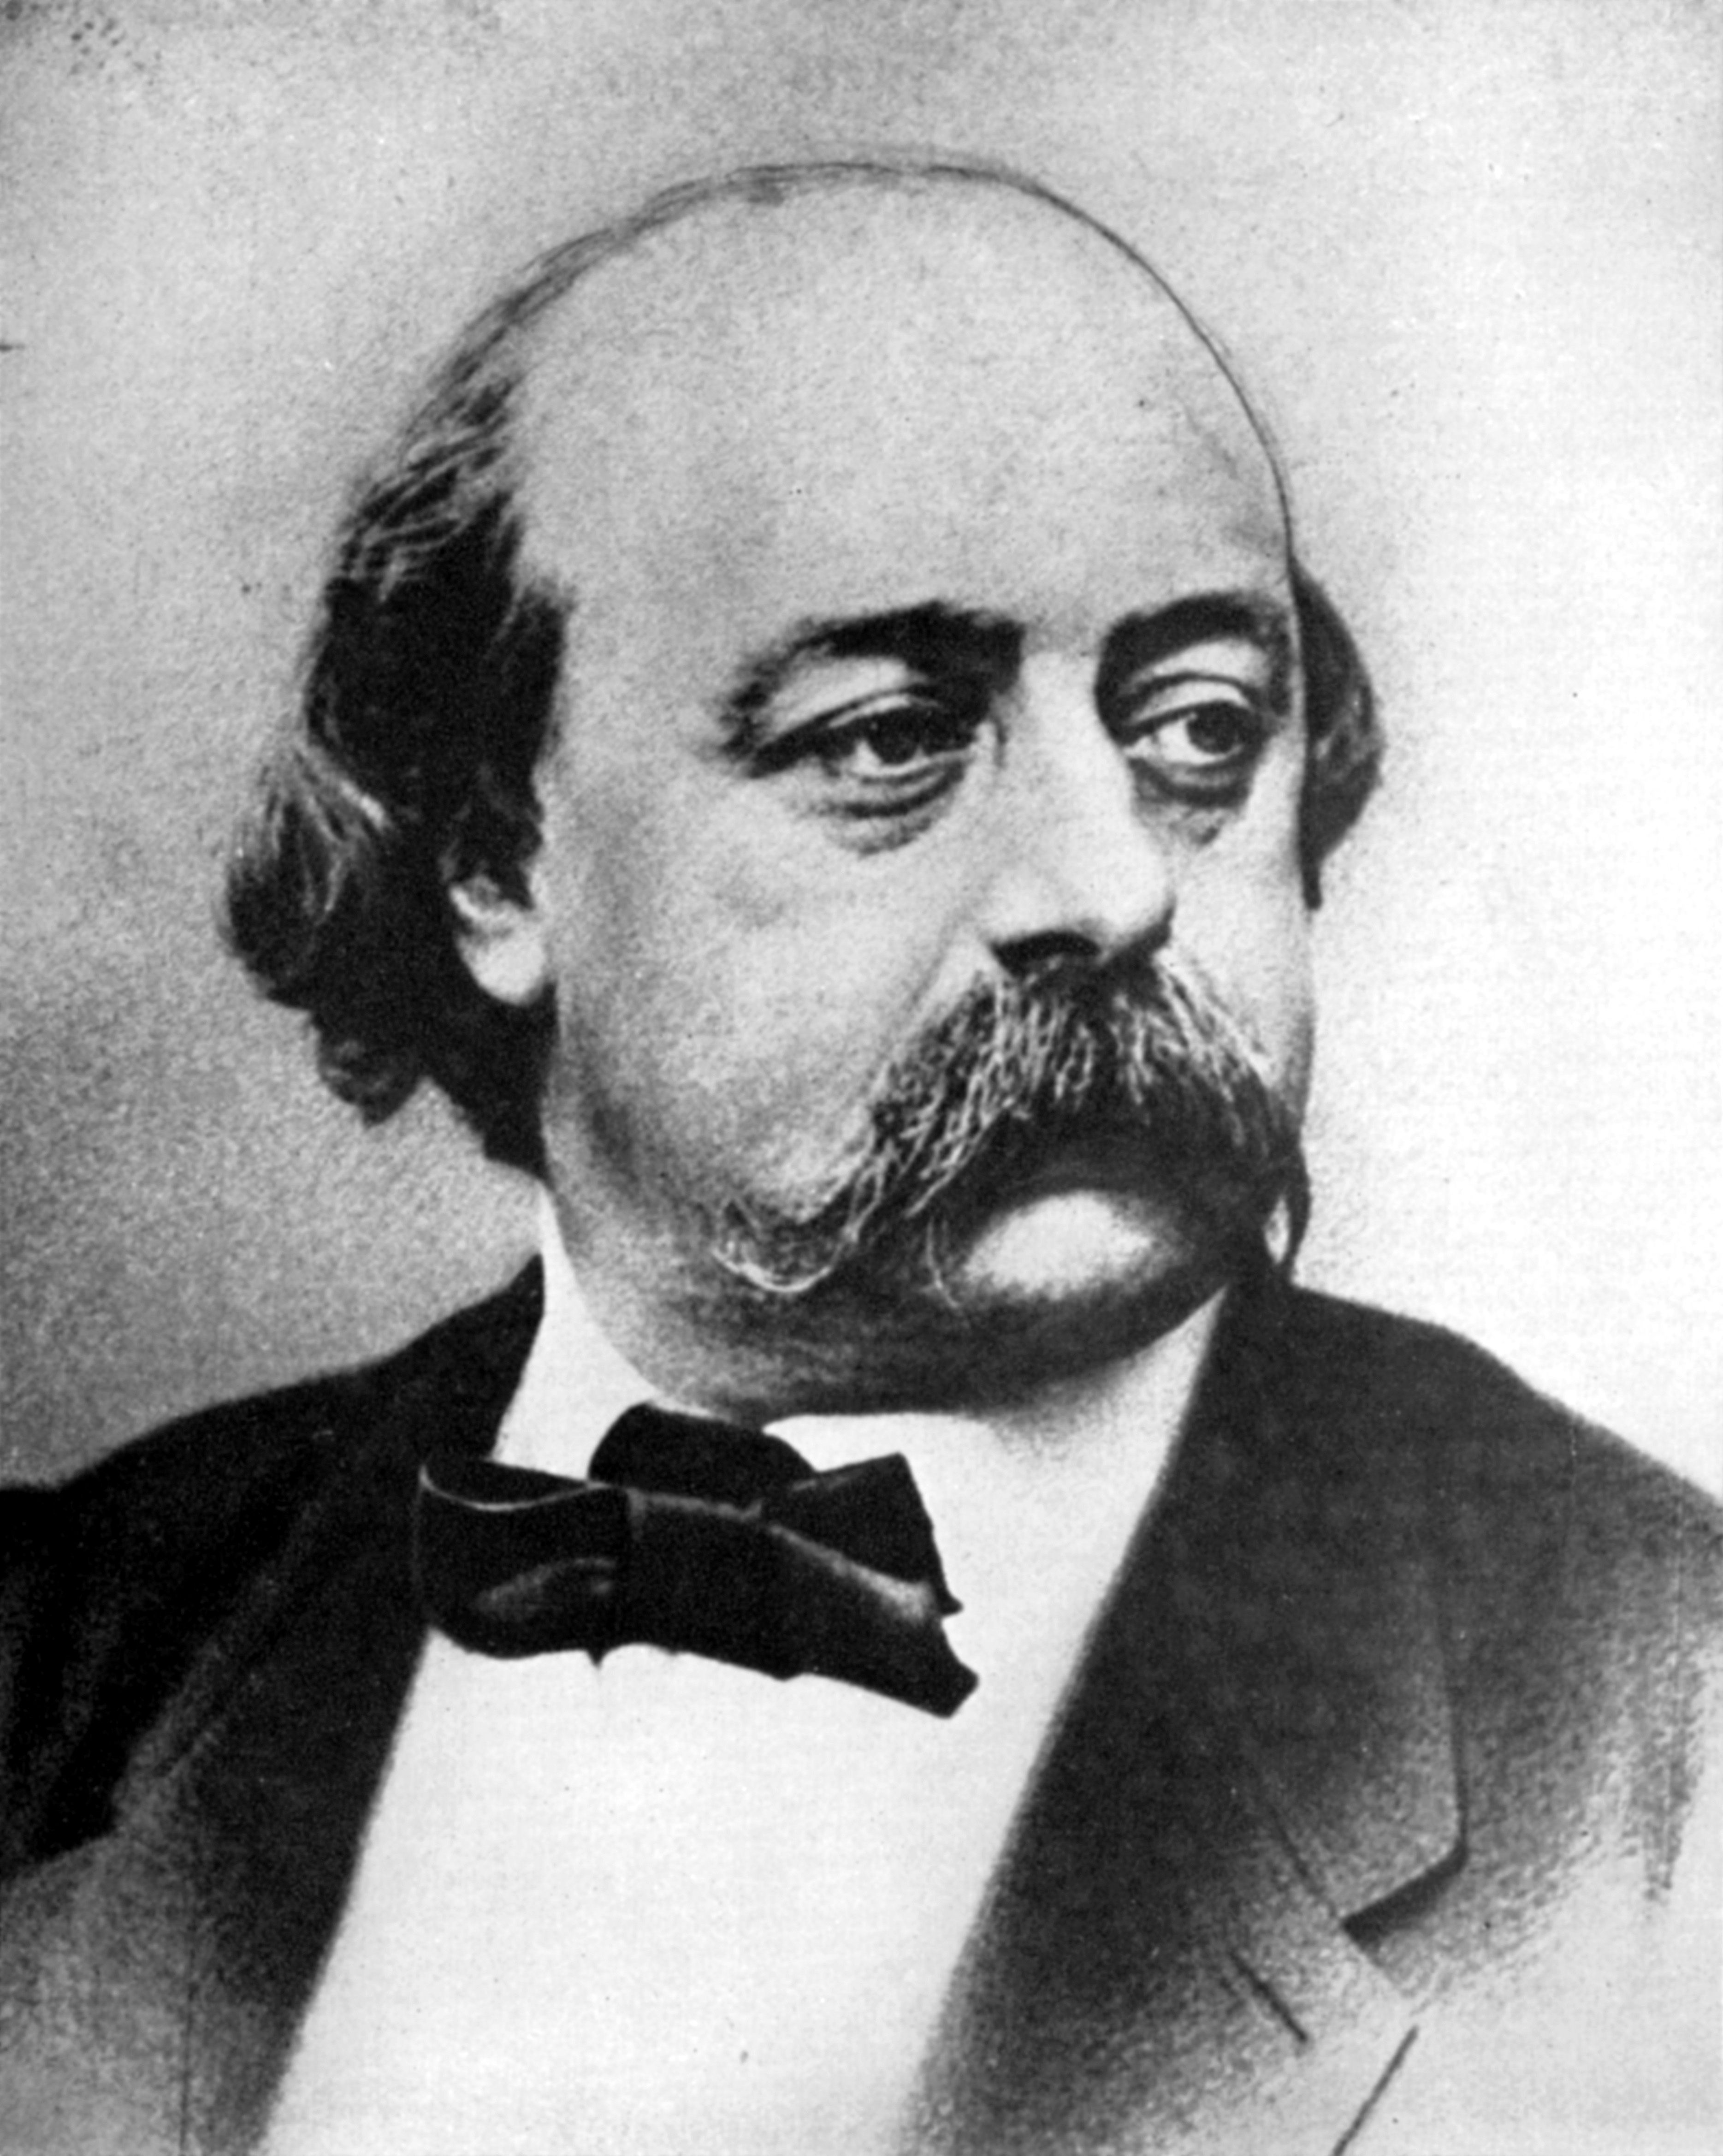 a literary analysis of a simple life by gustave flaubert Flaubert followed madame bovary with salammbi, his jeweled fantasy of the orient (that is, the middle east), and paired a simple heart with herodias, his hothouse fantasy of the story of .